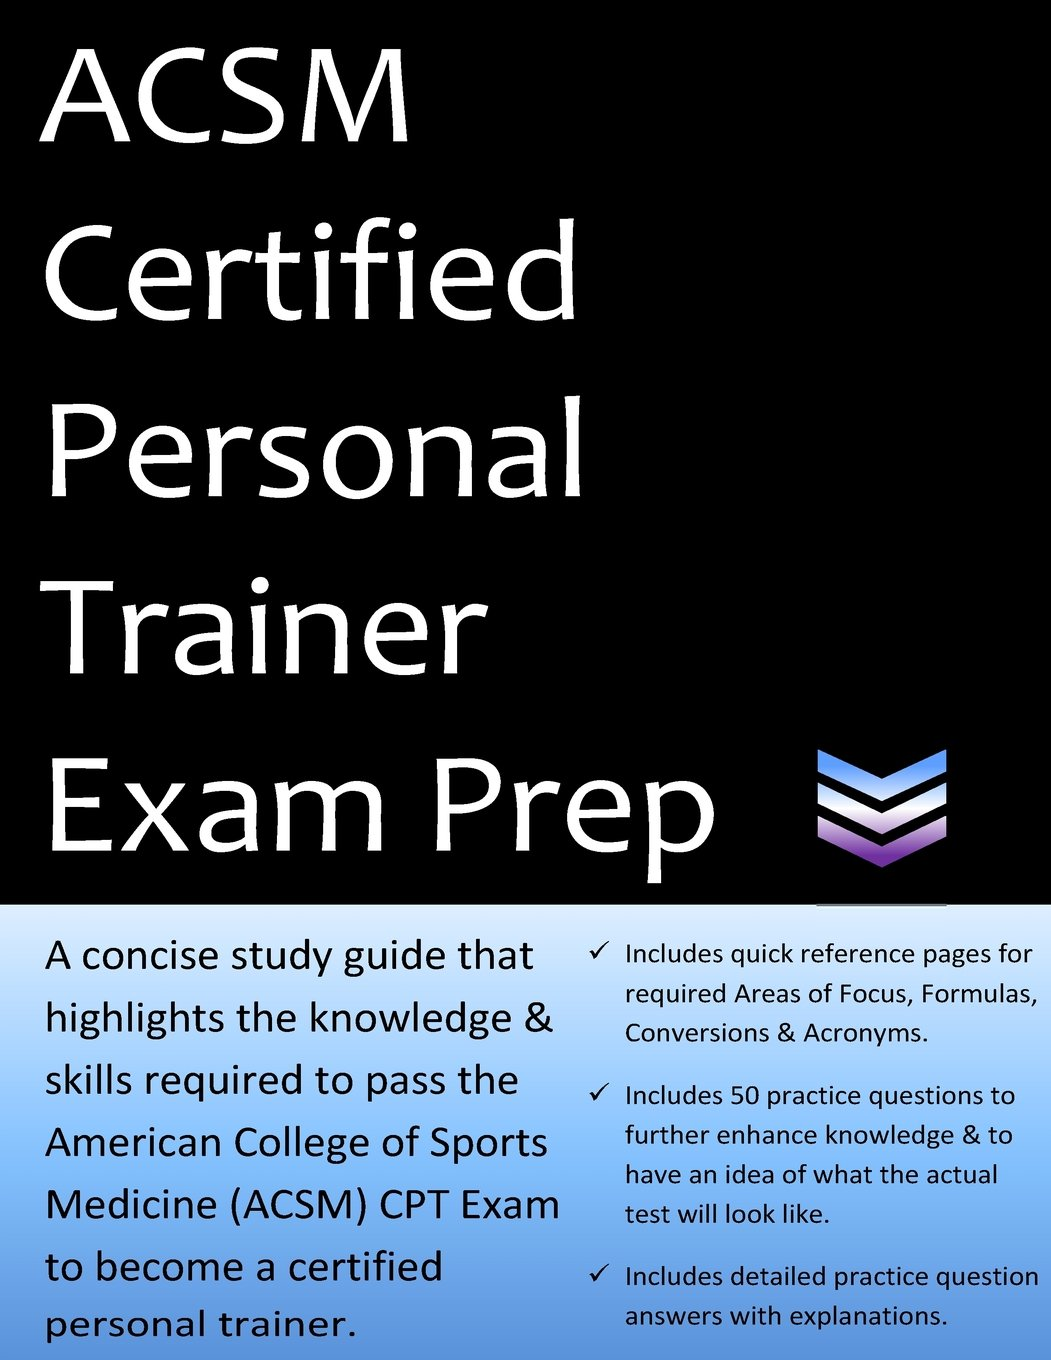 Buy Acsm Certified Personal Trainer Exam Prep 2018 Edition Study